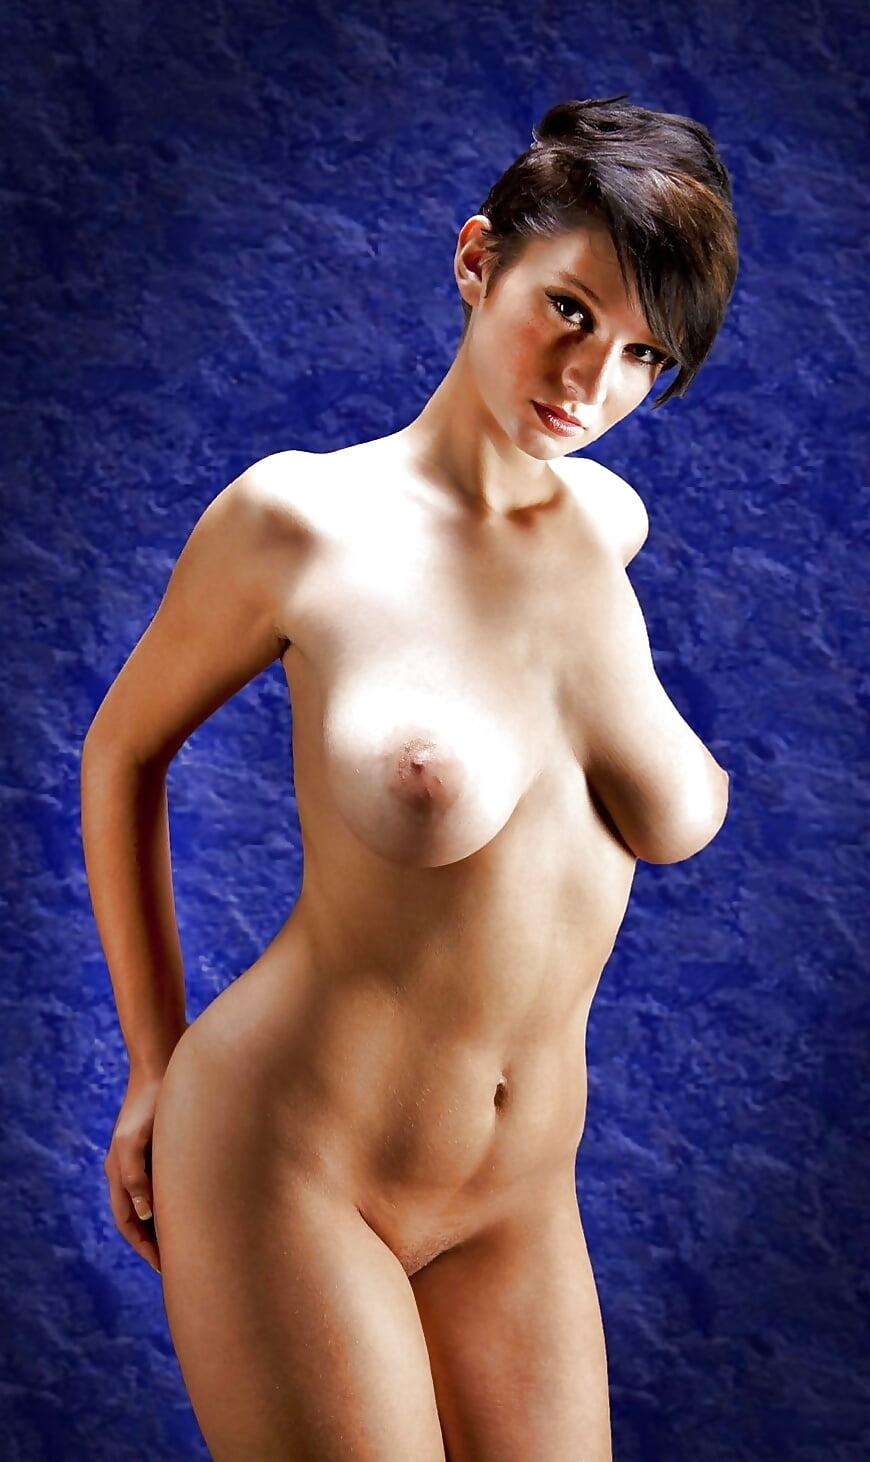 Mature naked sexy girl short hair naked